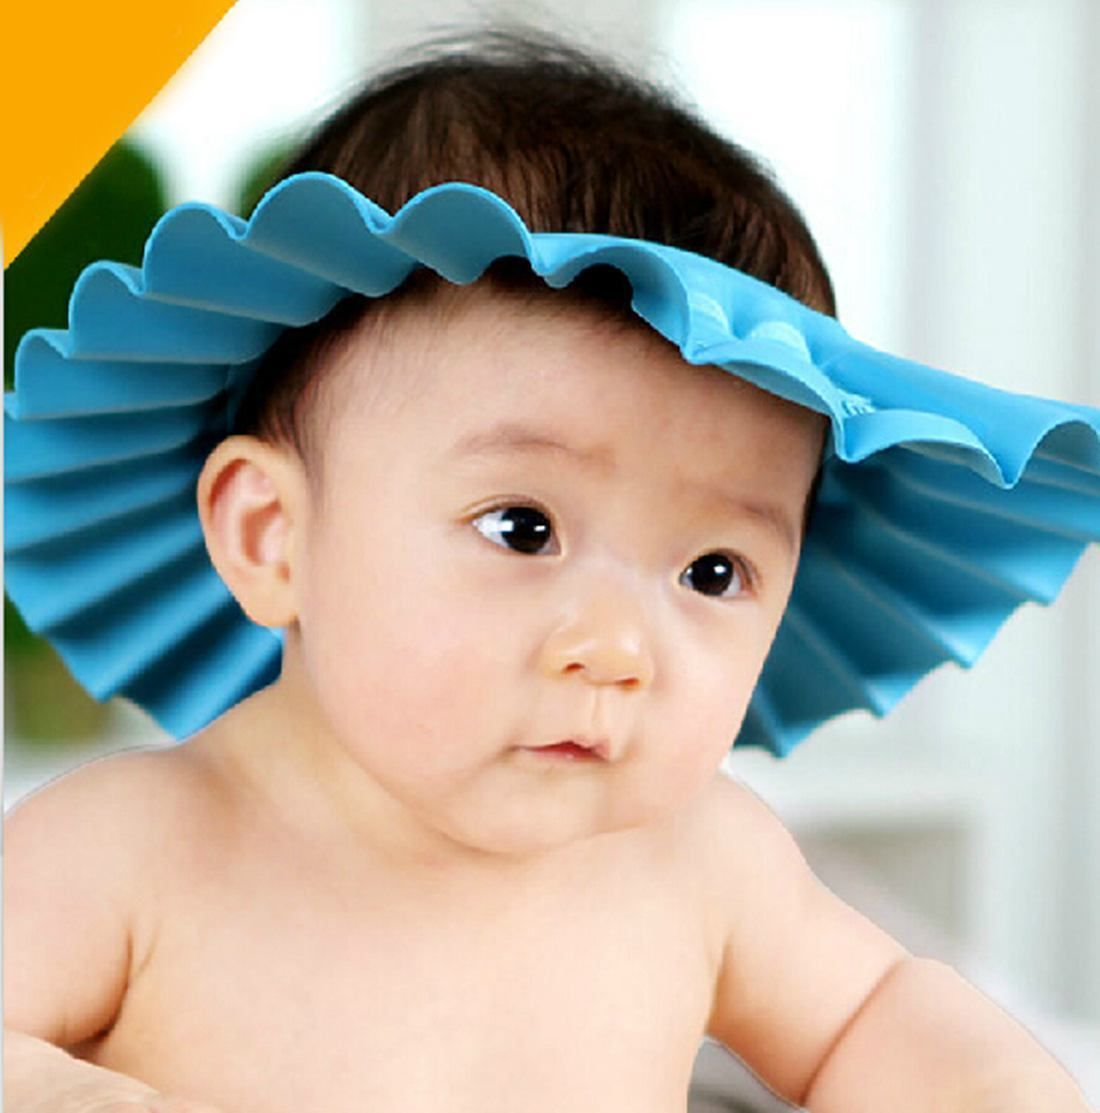 Soft Kids Toddler Baby Bath Hat Shower Shampoo Visor Hats Wash Hair Shield  Cap d986a0bb8903